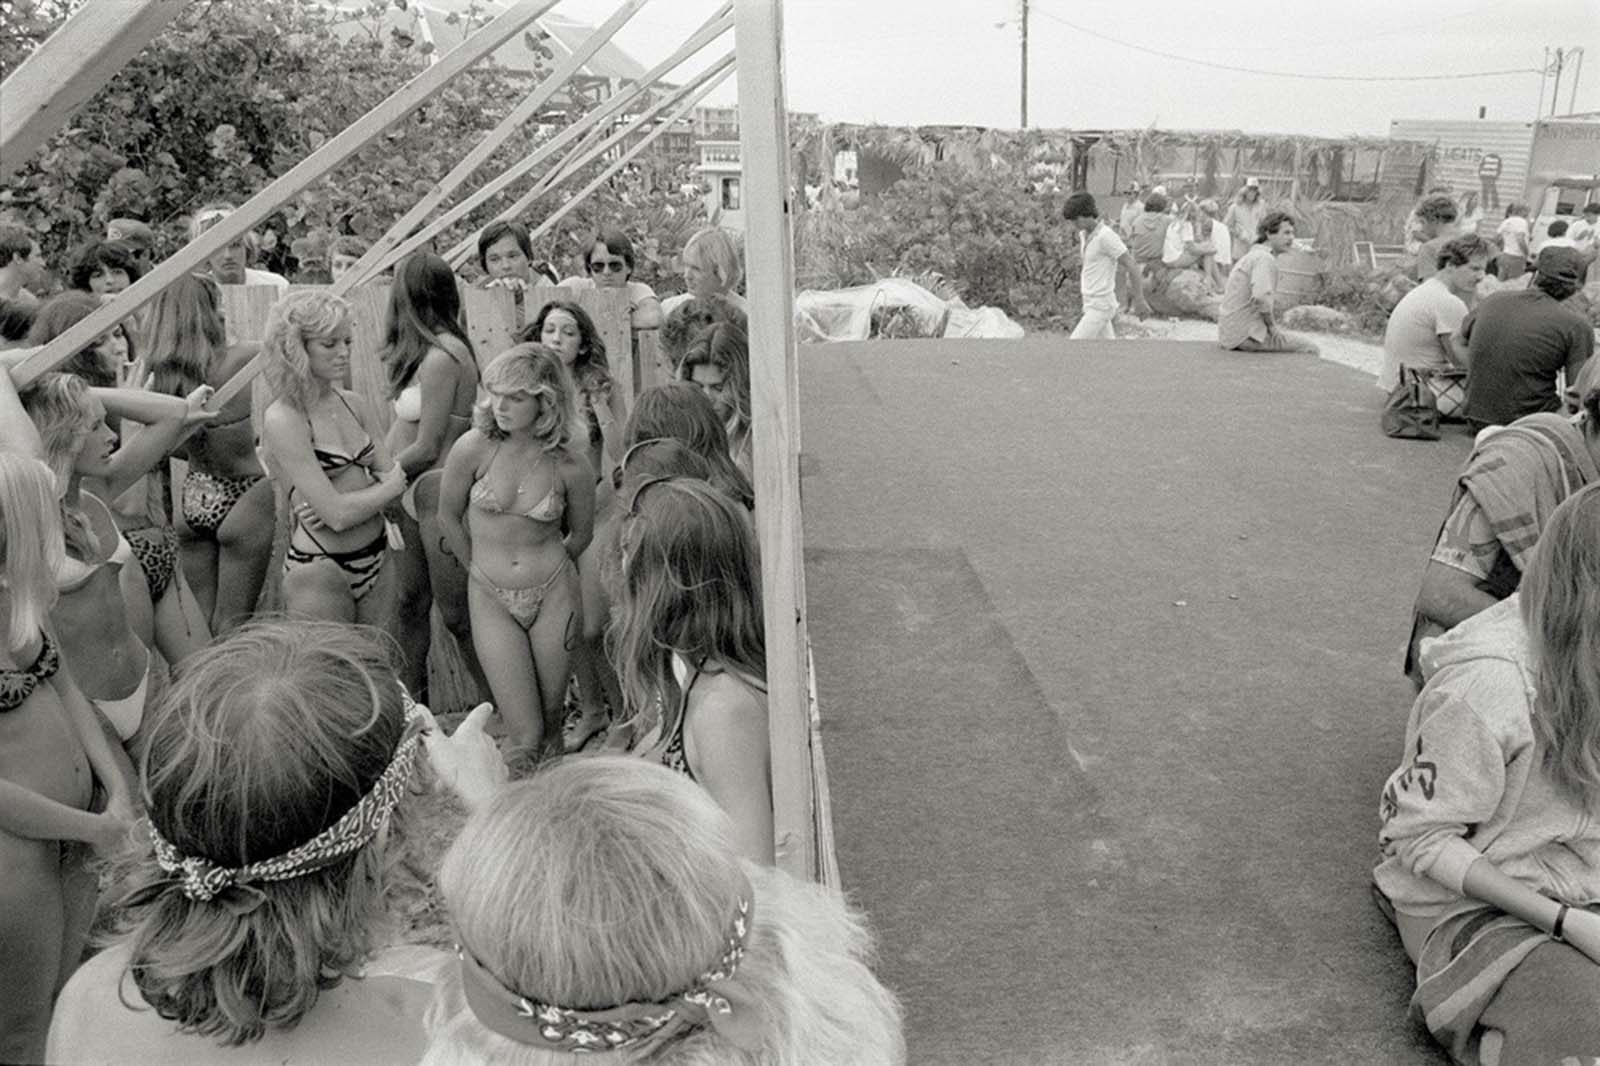 Spring Break in the 1980s.